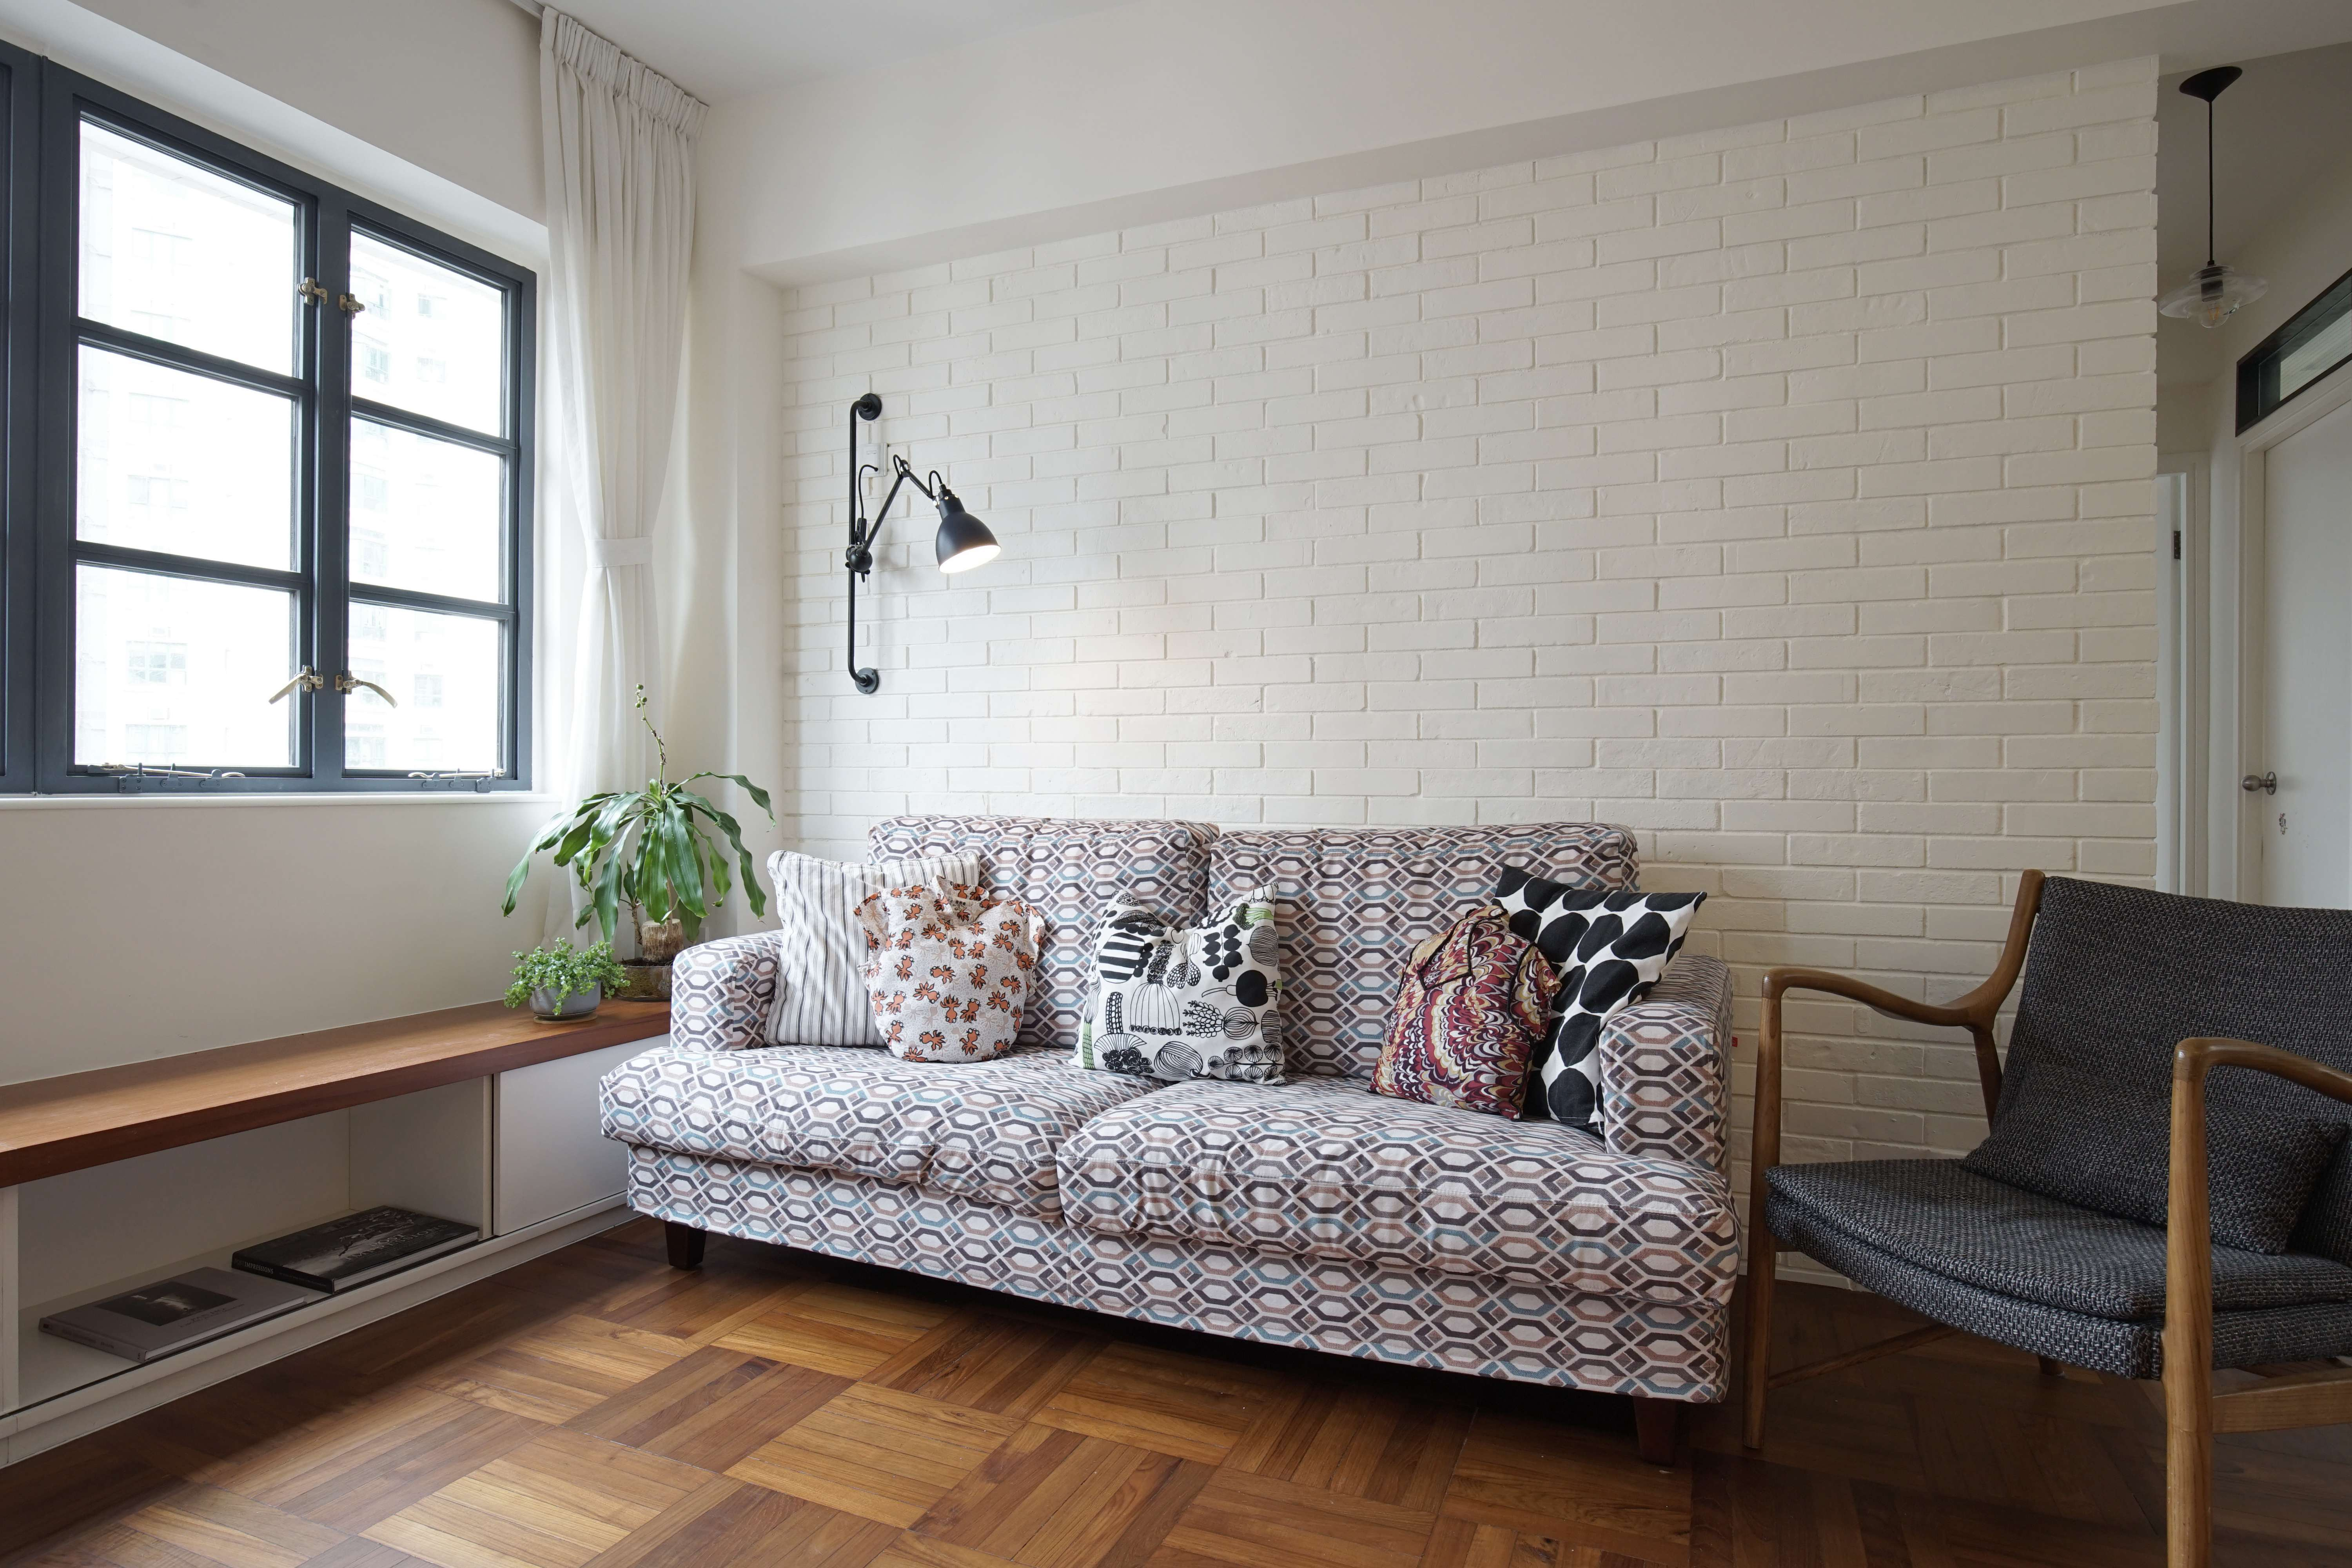 Sitting Area Cushions Covered With Fabric From Old Clothes Sit On A Re Upholstered Sofa The GRAS DCW Wall Lamp HK4000 Came Mr Blacksmith And